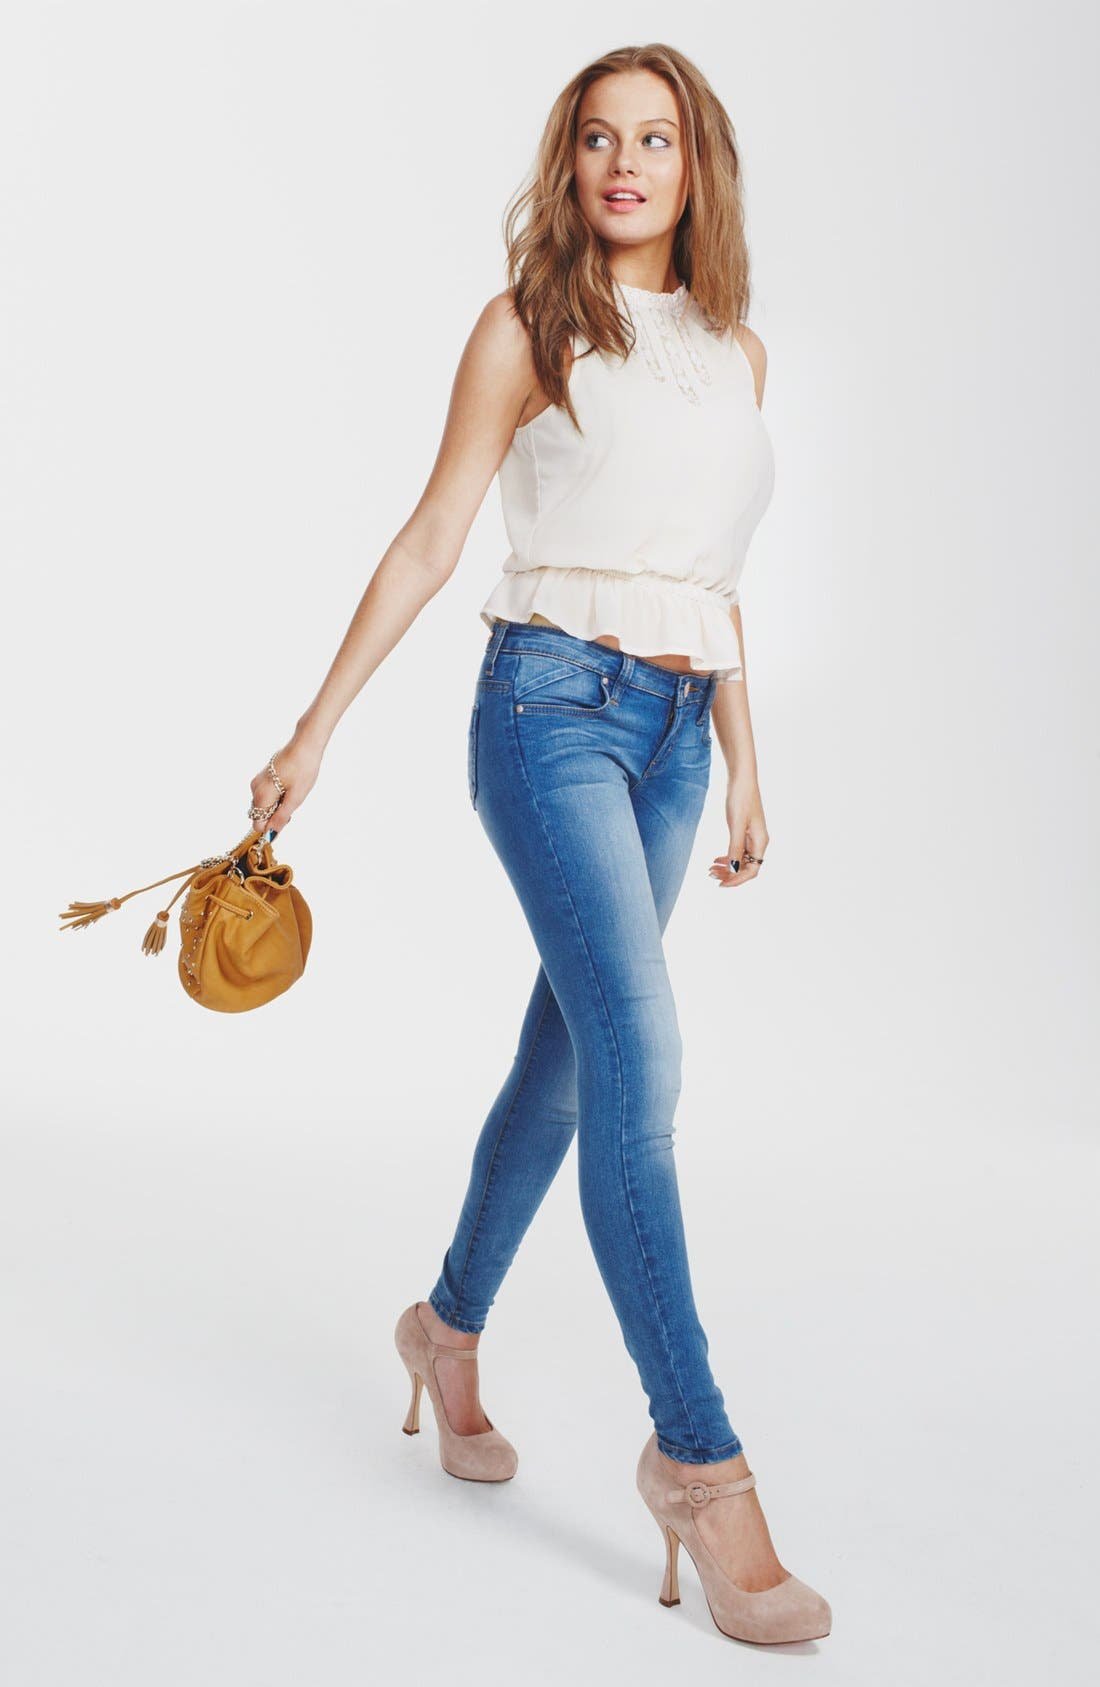 Alternate Image 1 Selected - Lush Tank & STS Blue Skinny Jeans